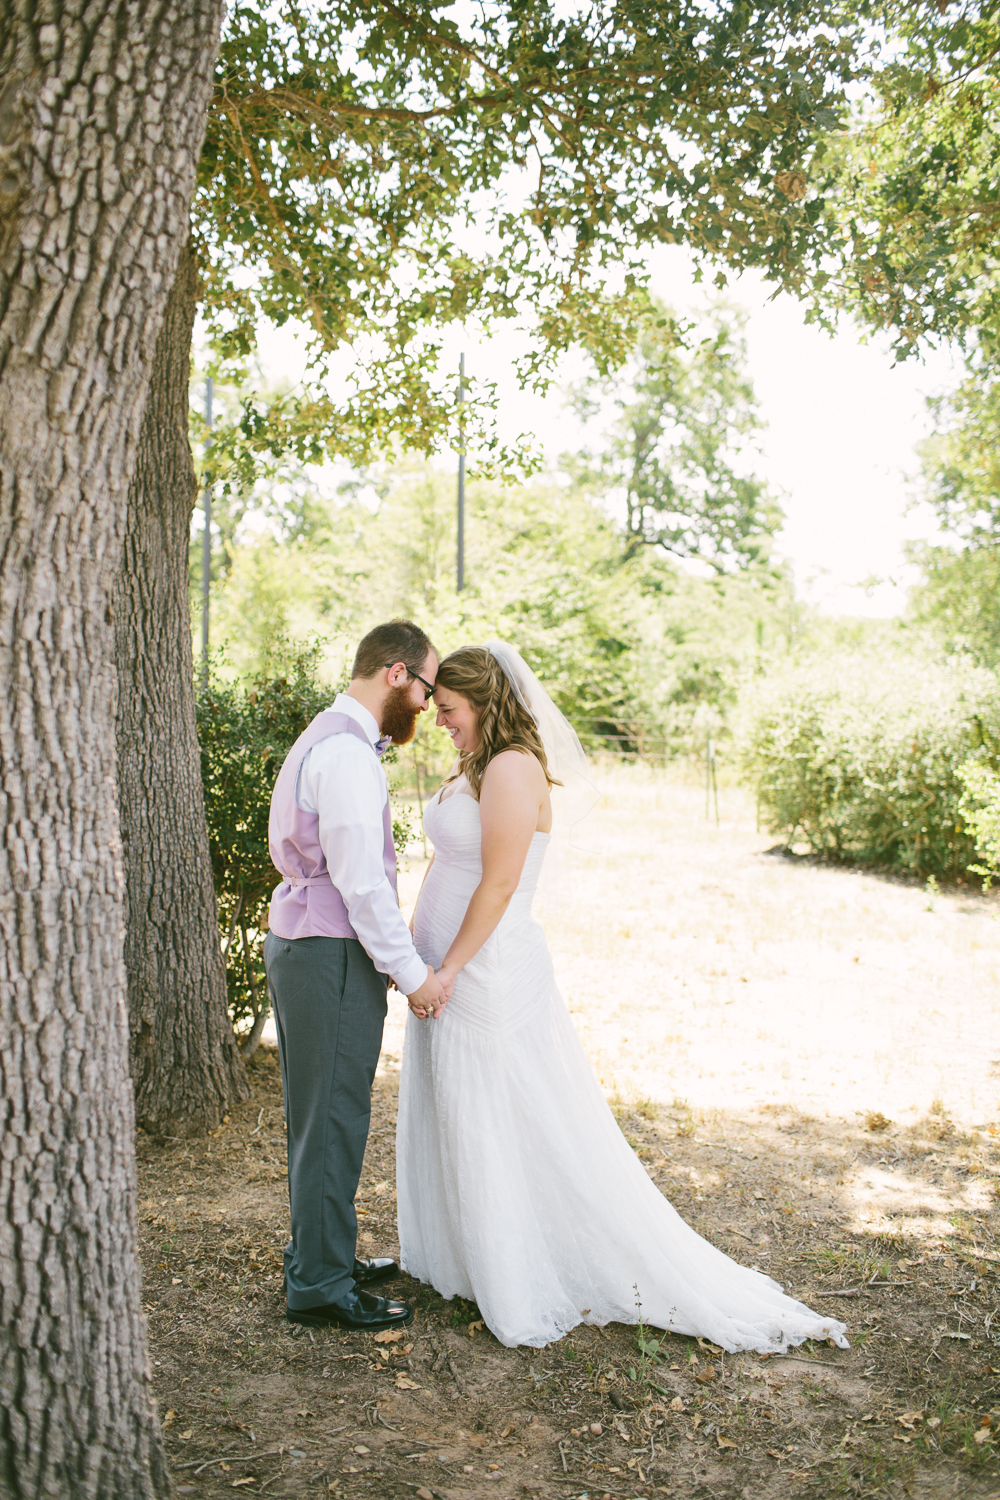 BREWER WEDDING-SQUARESPACE-25.JPG